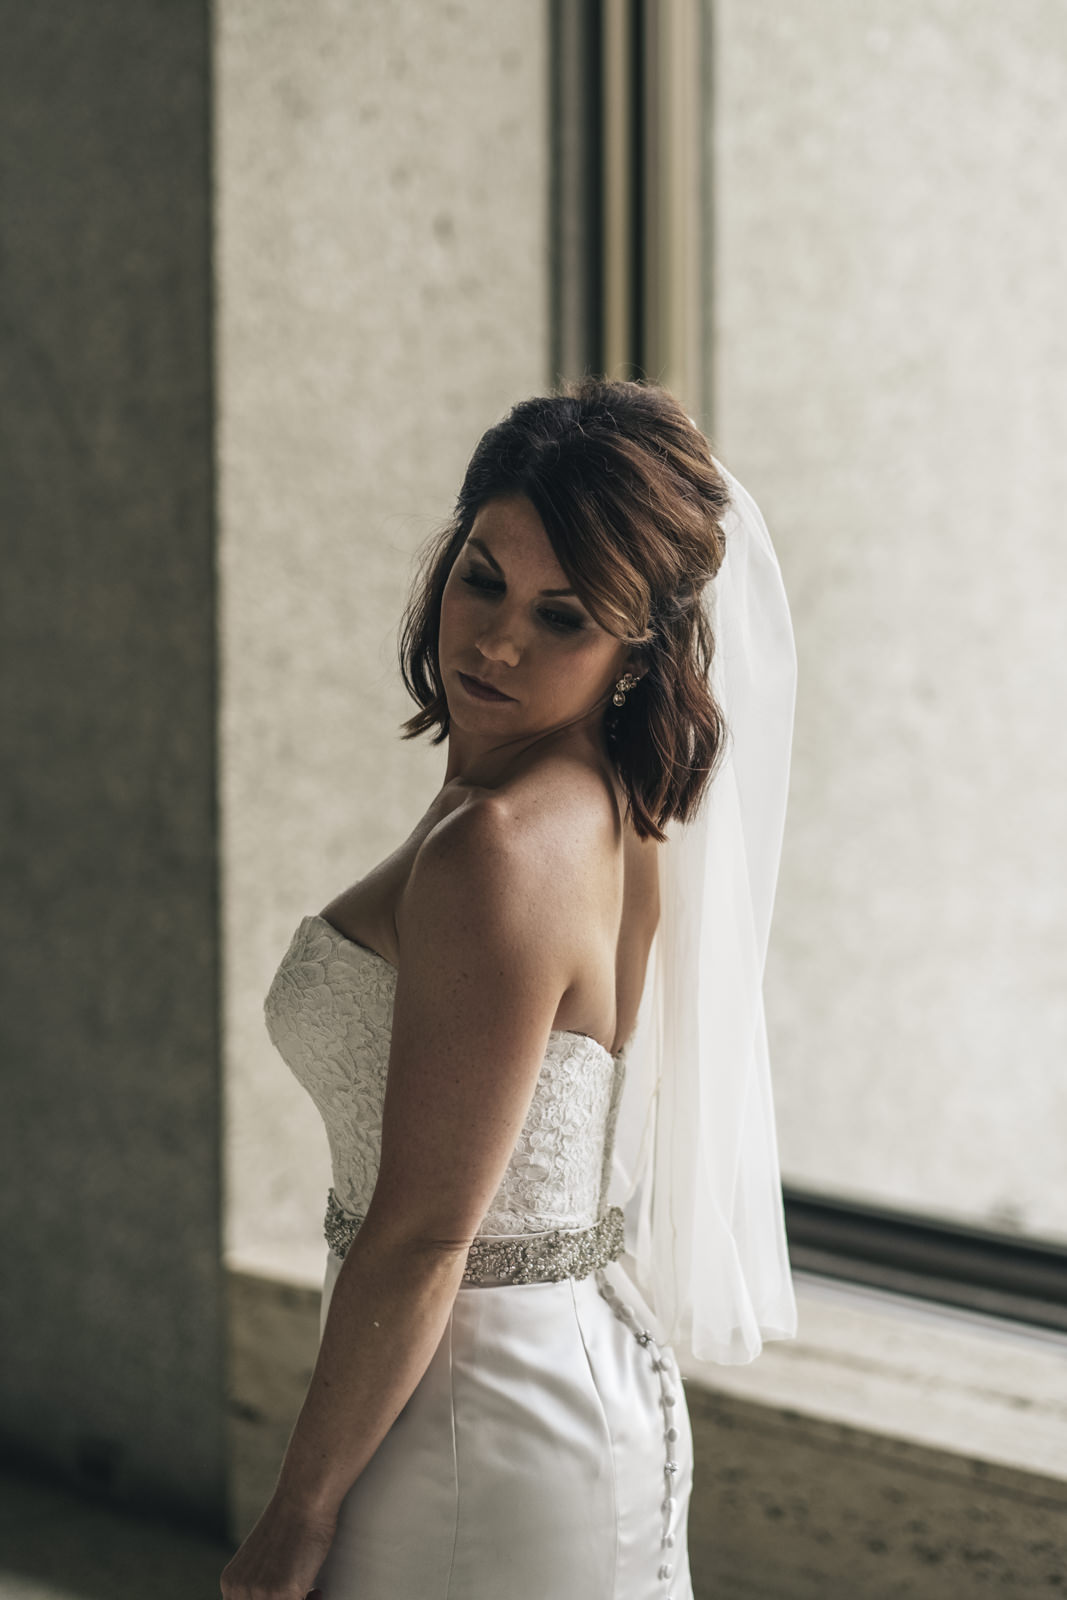 Picture of the bride before her wedding ceremony in Northwest Ohio.